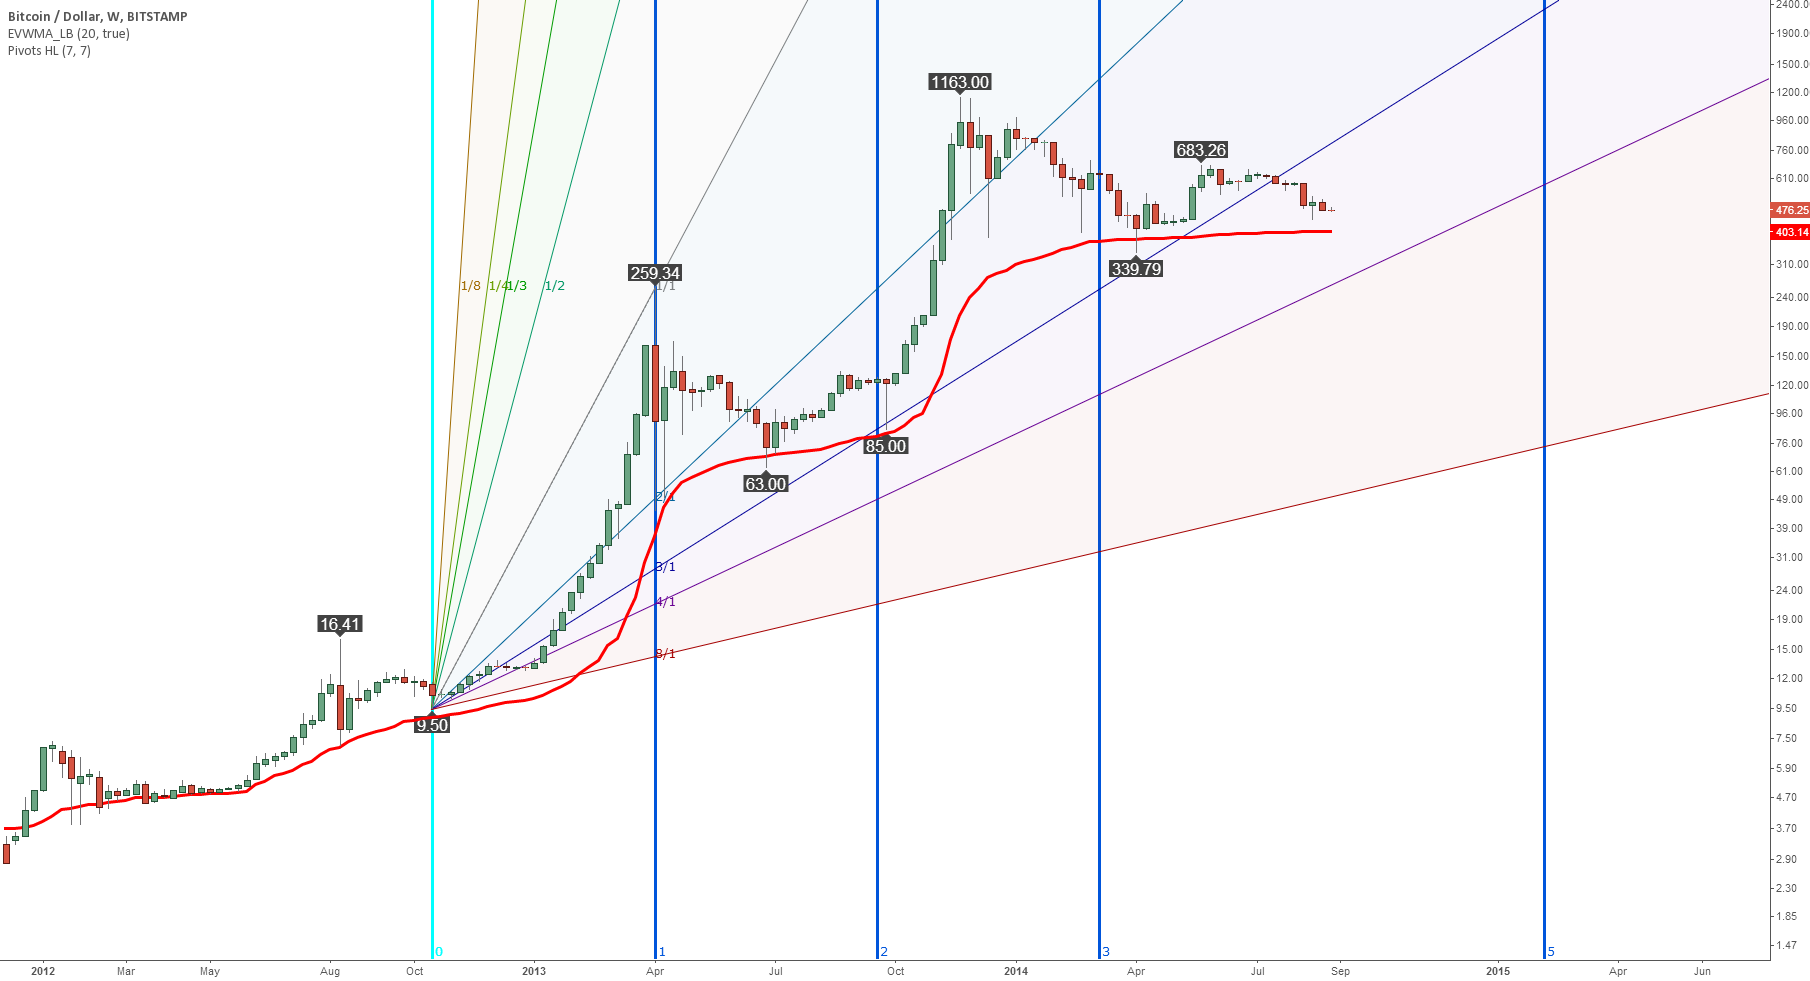 Predicting the next Bitcoin bubble with Fibonacci time zones